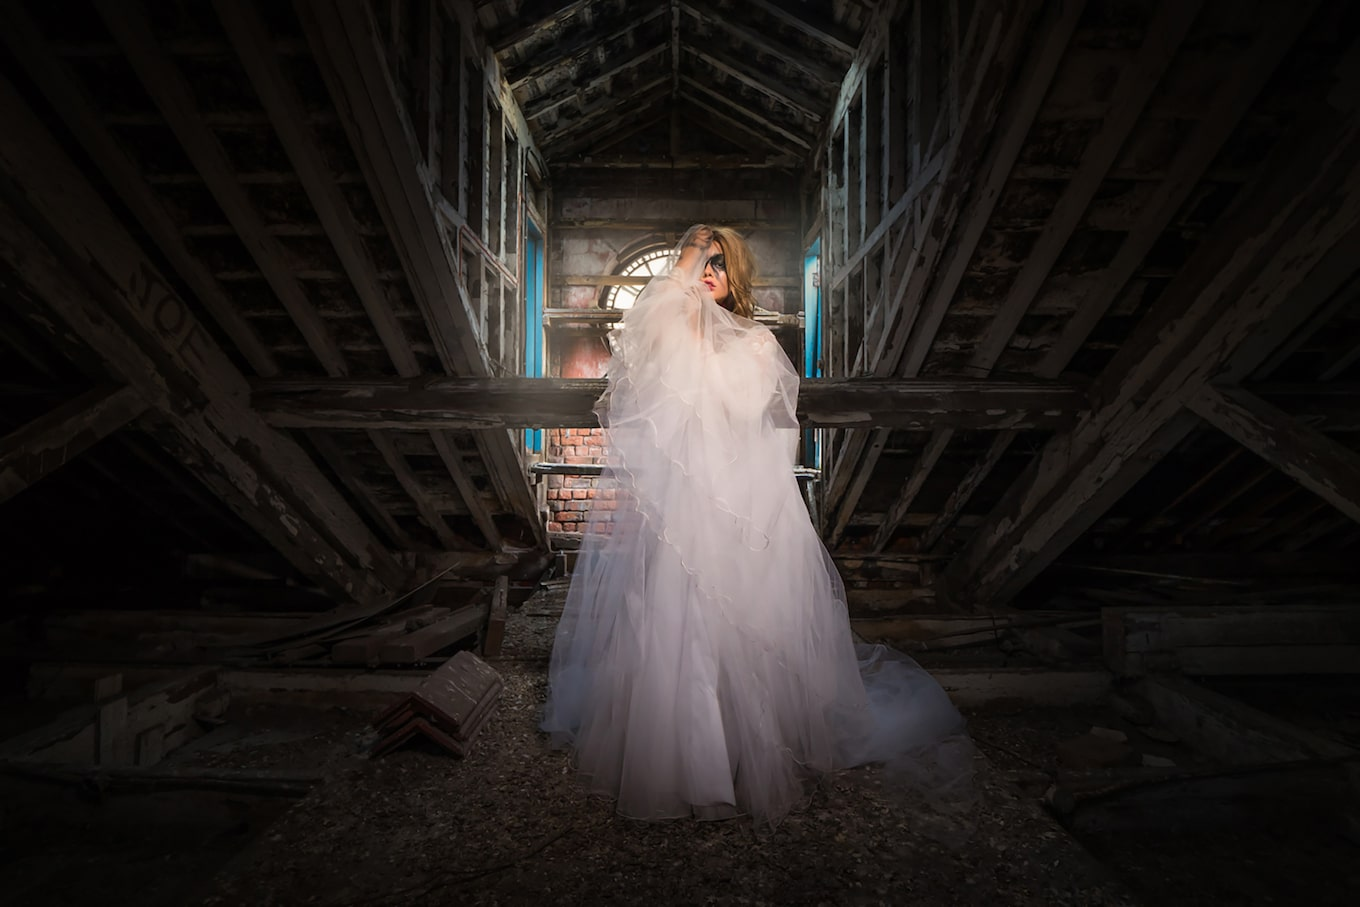 terry-donnelly-sony-alpha-9-bride-in-abandoned-church-with-heavy-eye-make-up